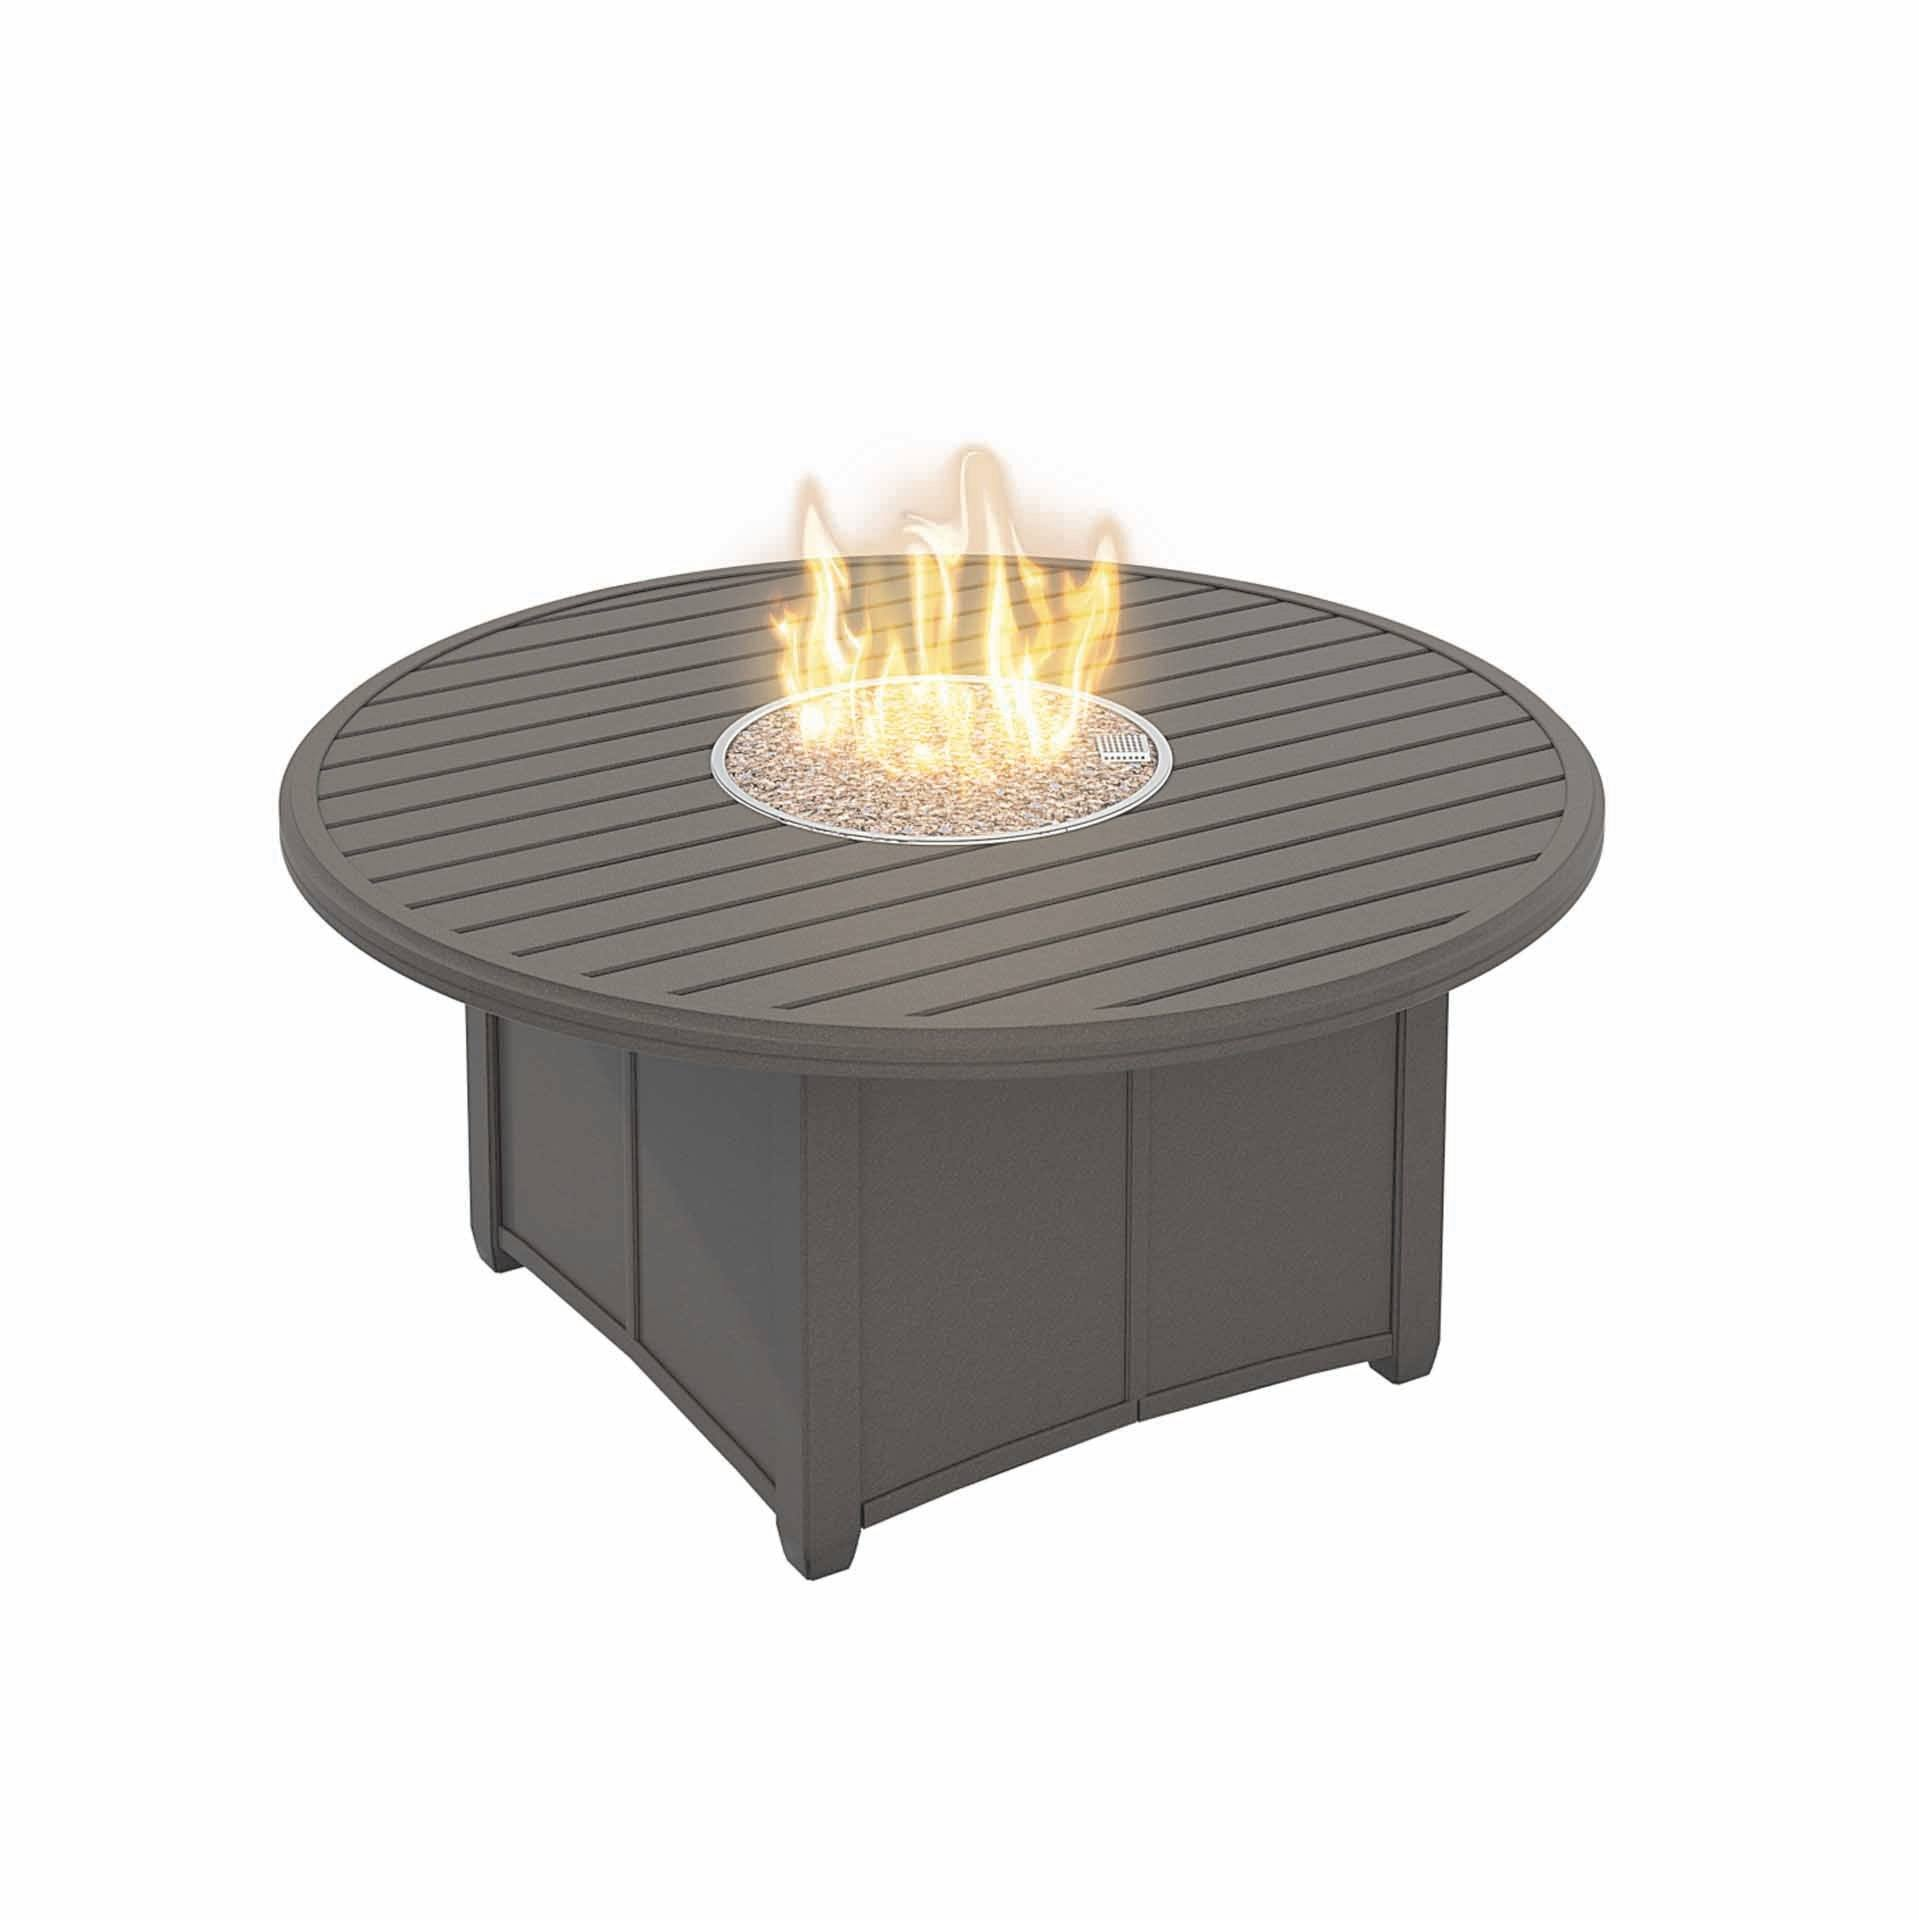 Tropitone Banchetto 54 Quot Round Fire Pit Leisure Living